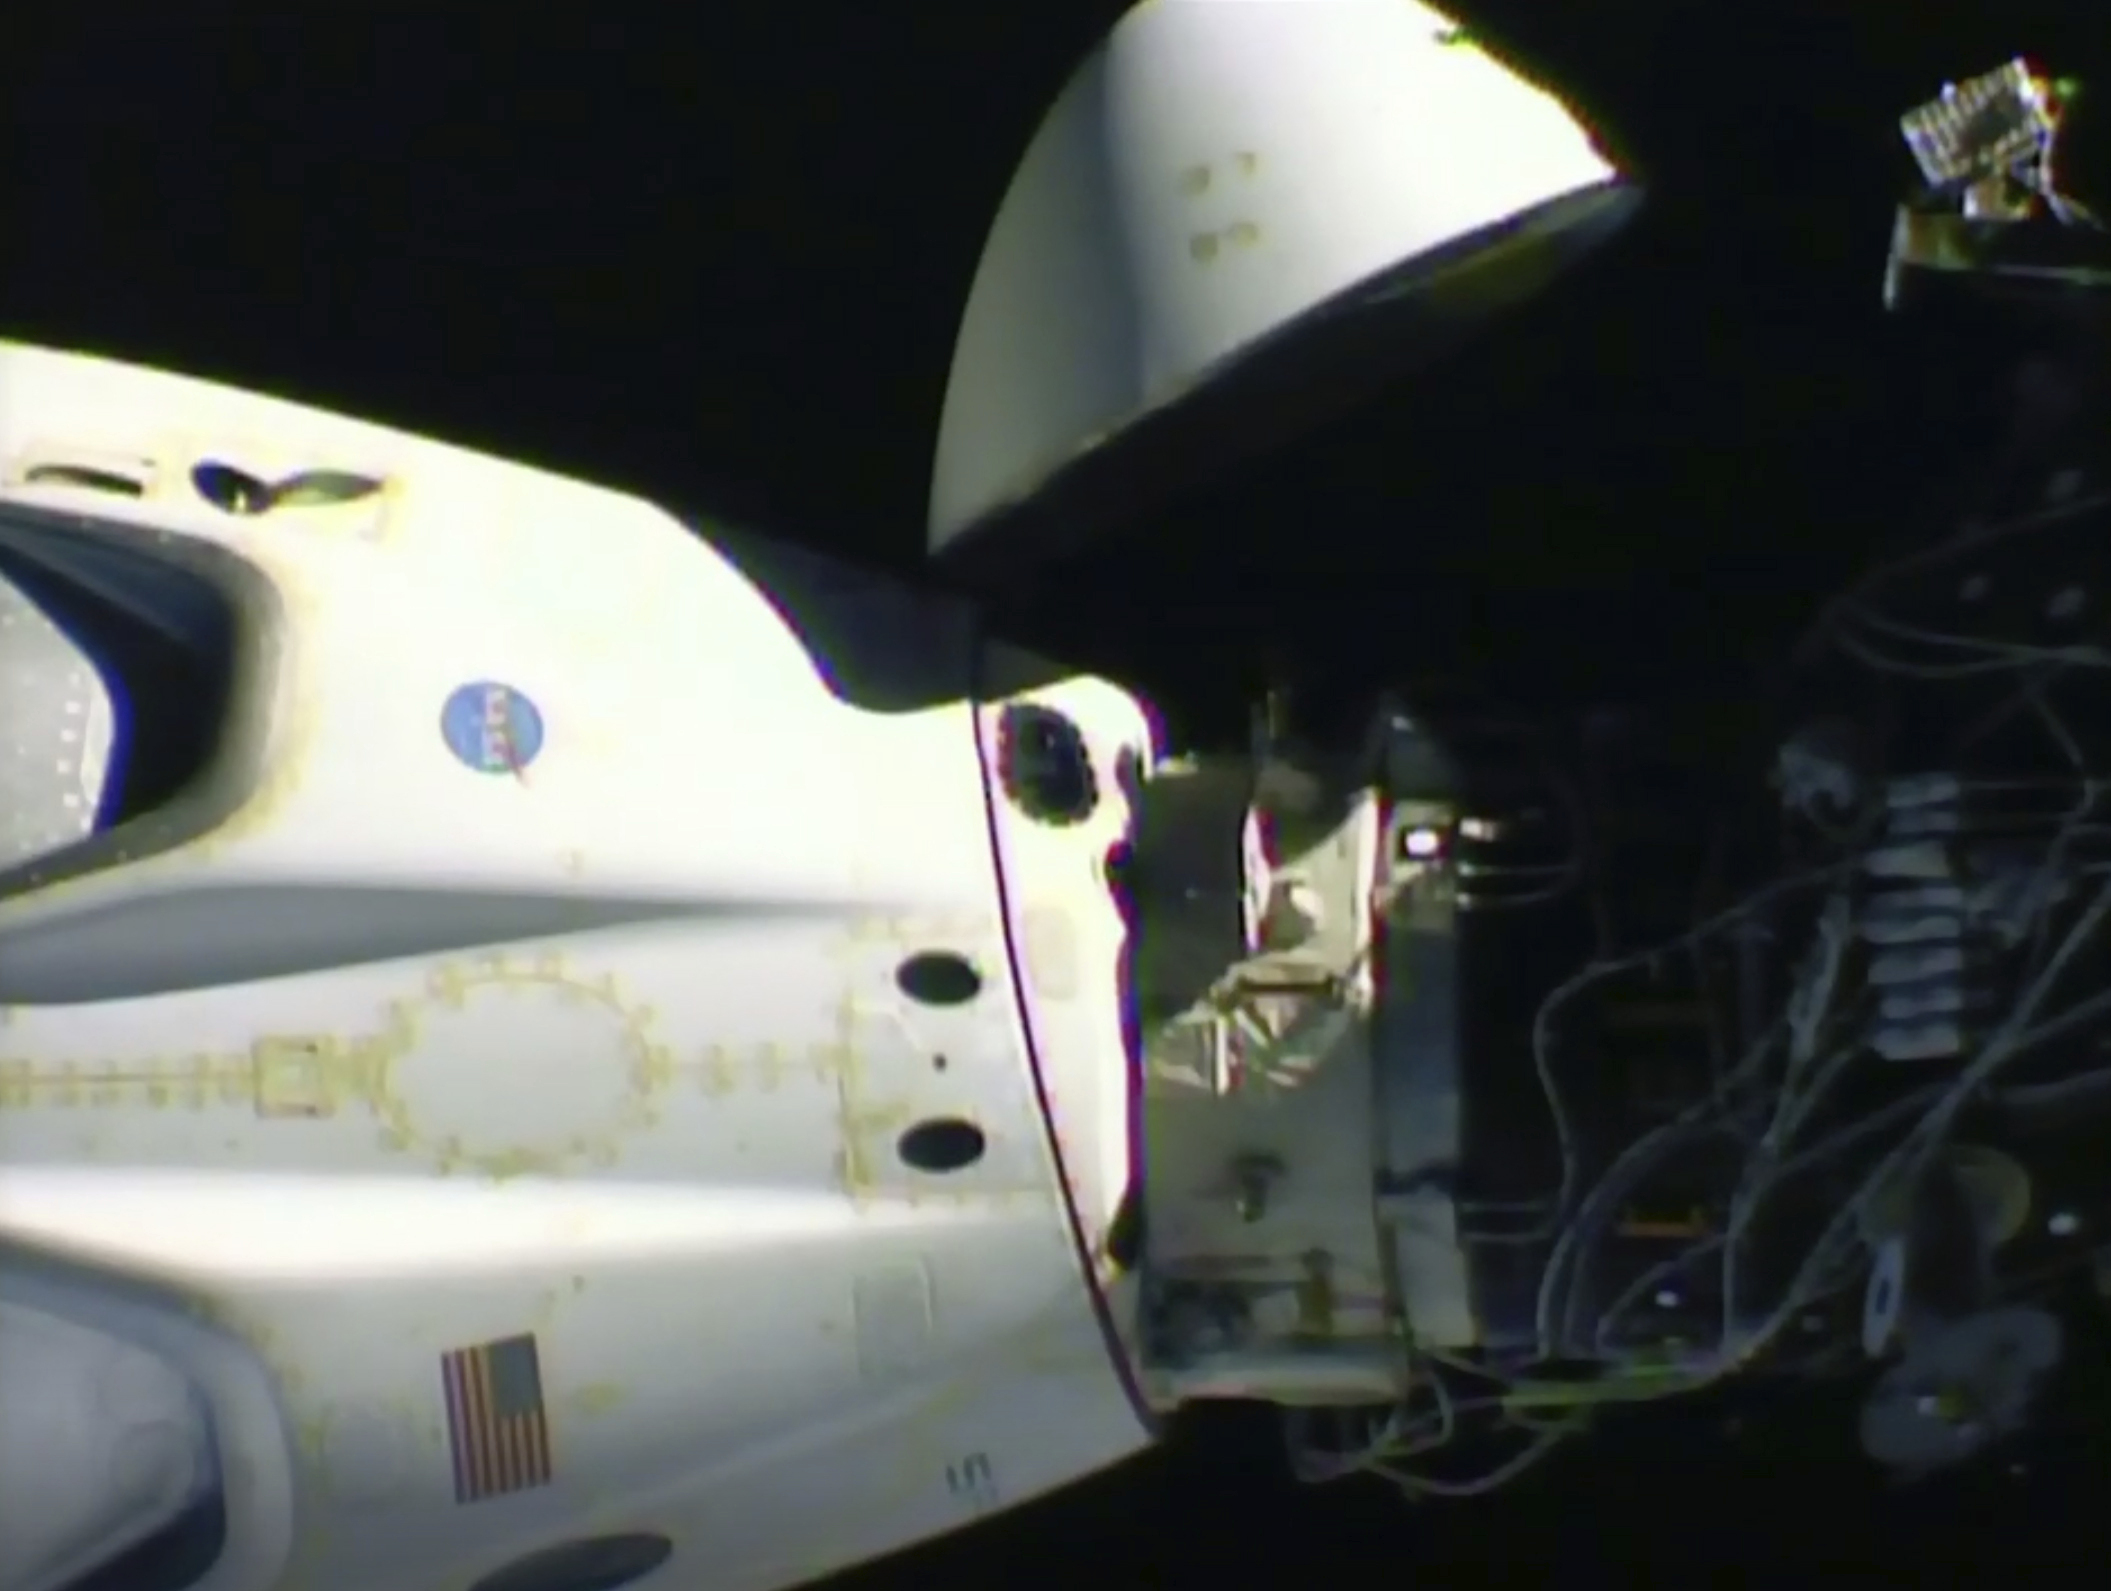 SpaceX's Dragon spacecraft is strewn off the west coast of Florida